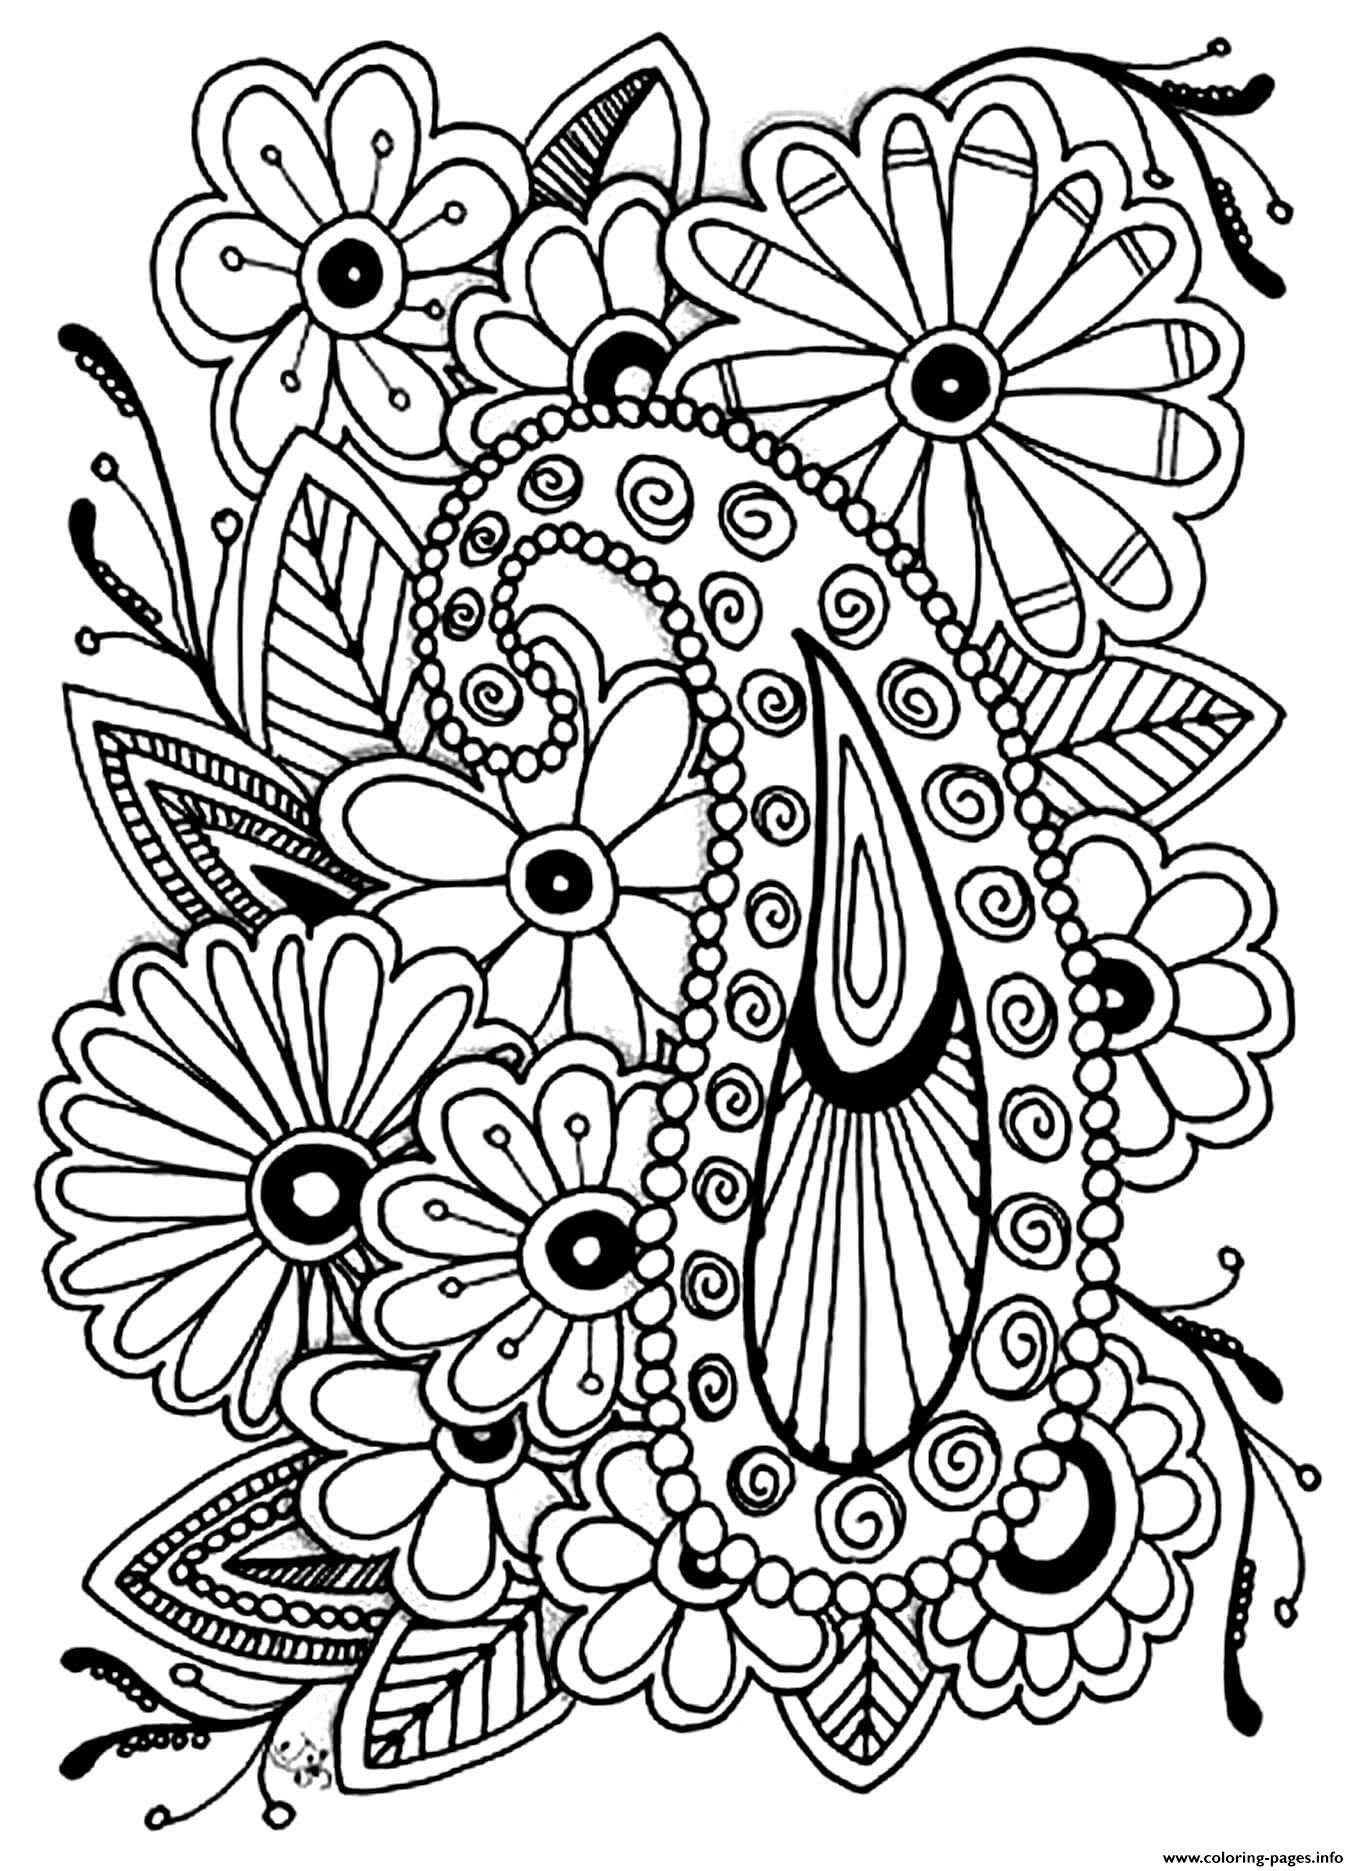 paisley print coloring pages flowers with paisley patterns coloring page free coloring print pages paisley